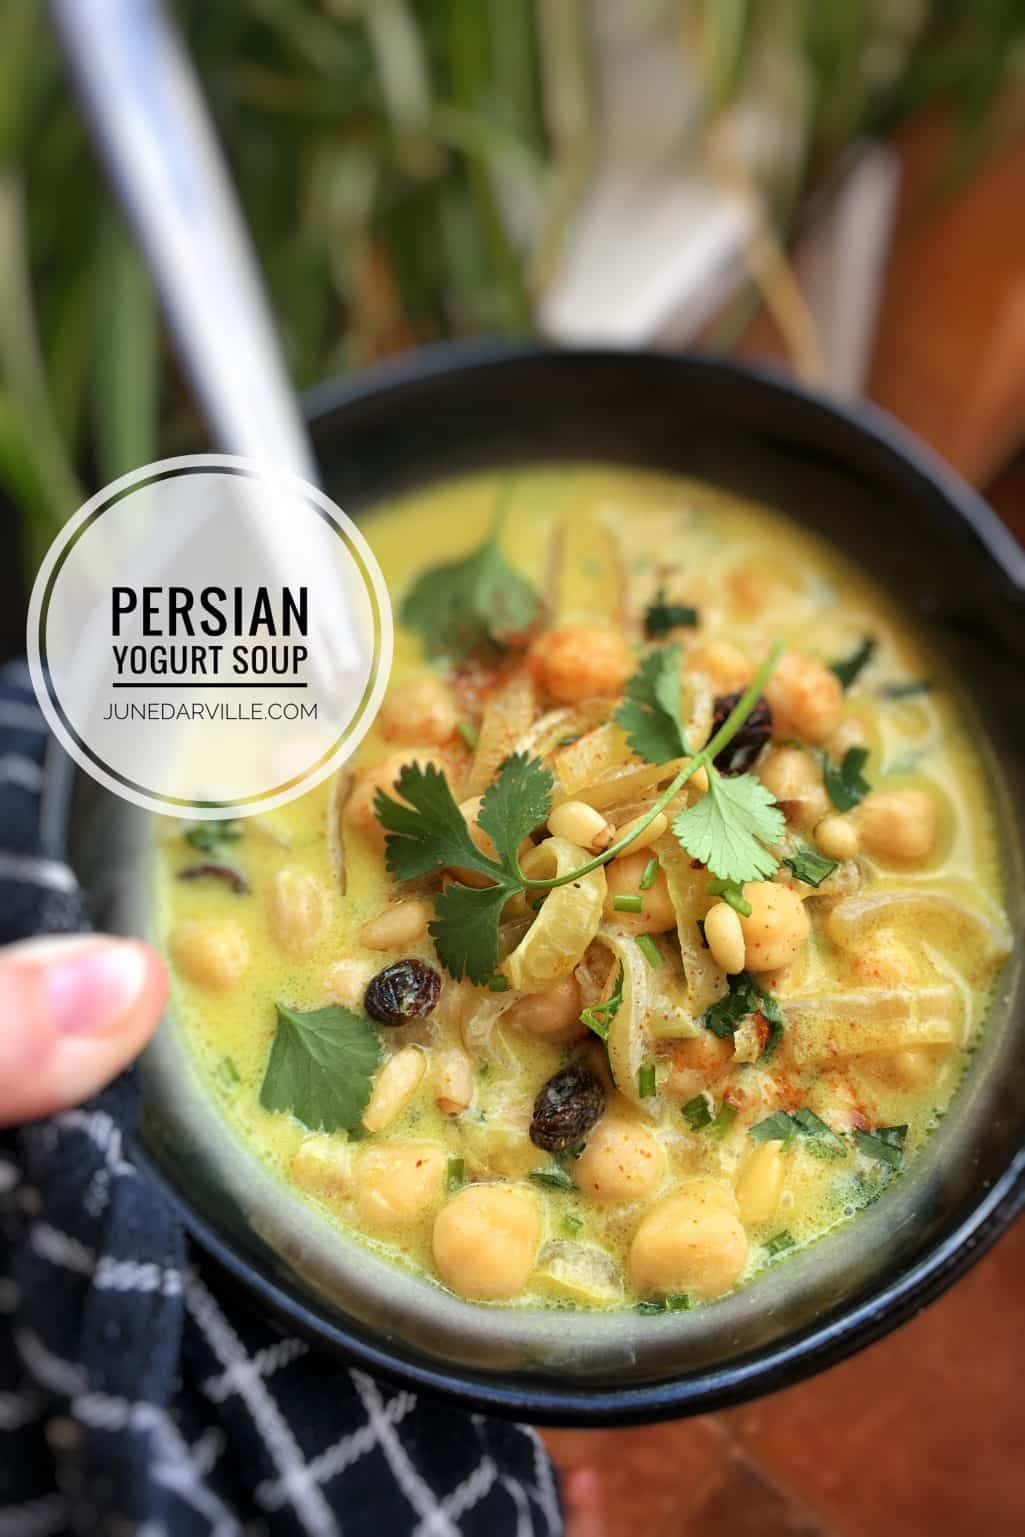 Chilled Persian Yogurt Soup Recipe